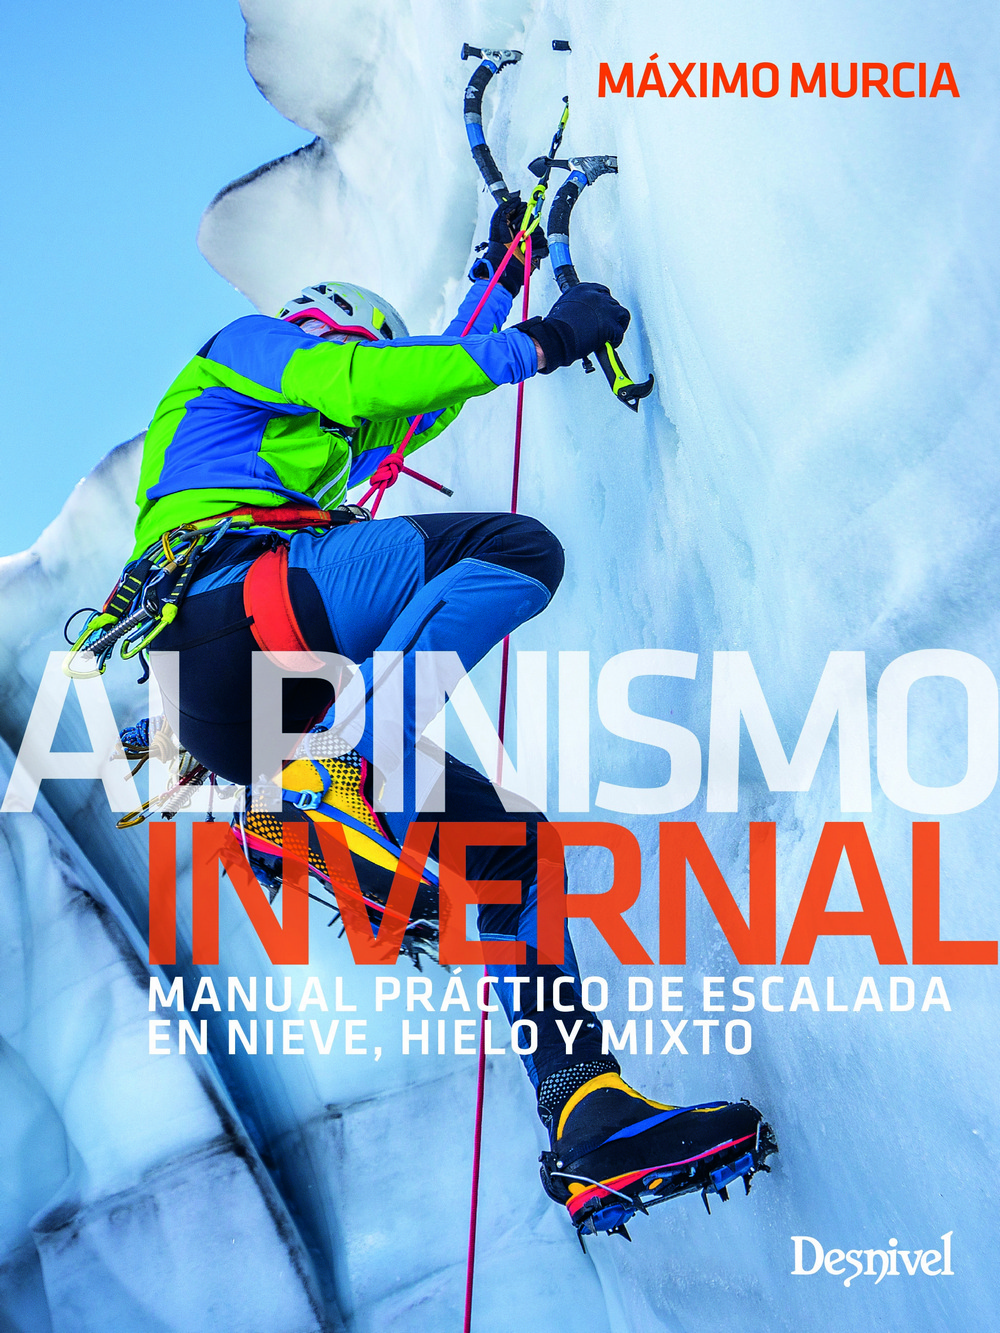 Alpinismo invernal